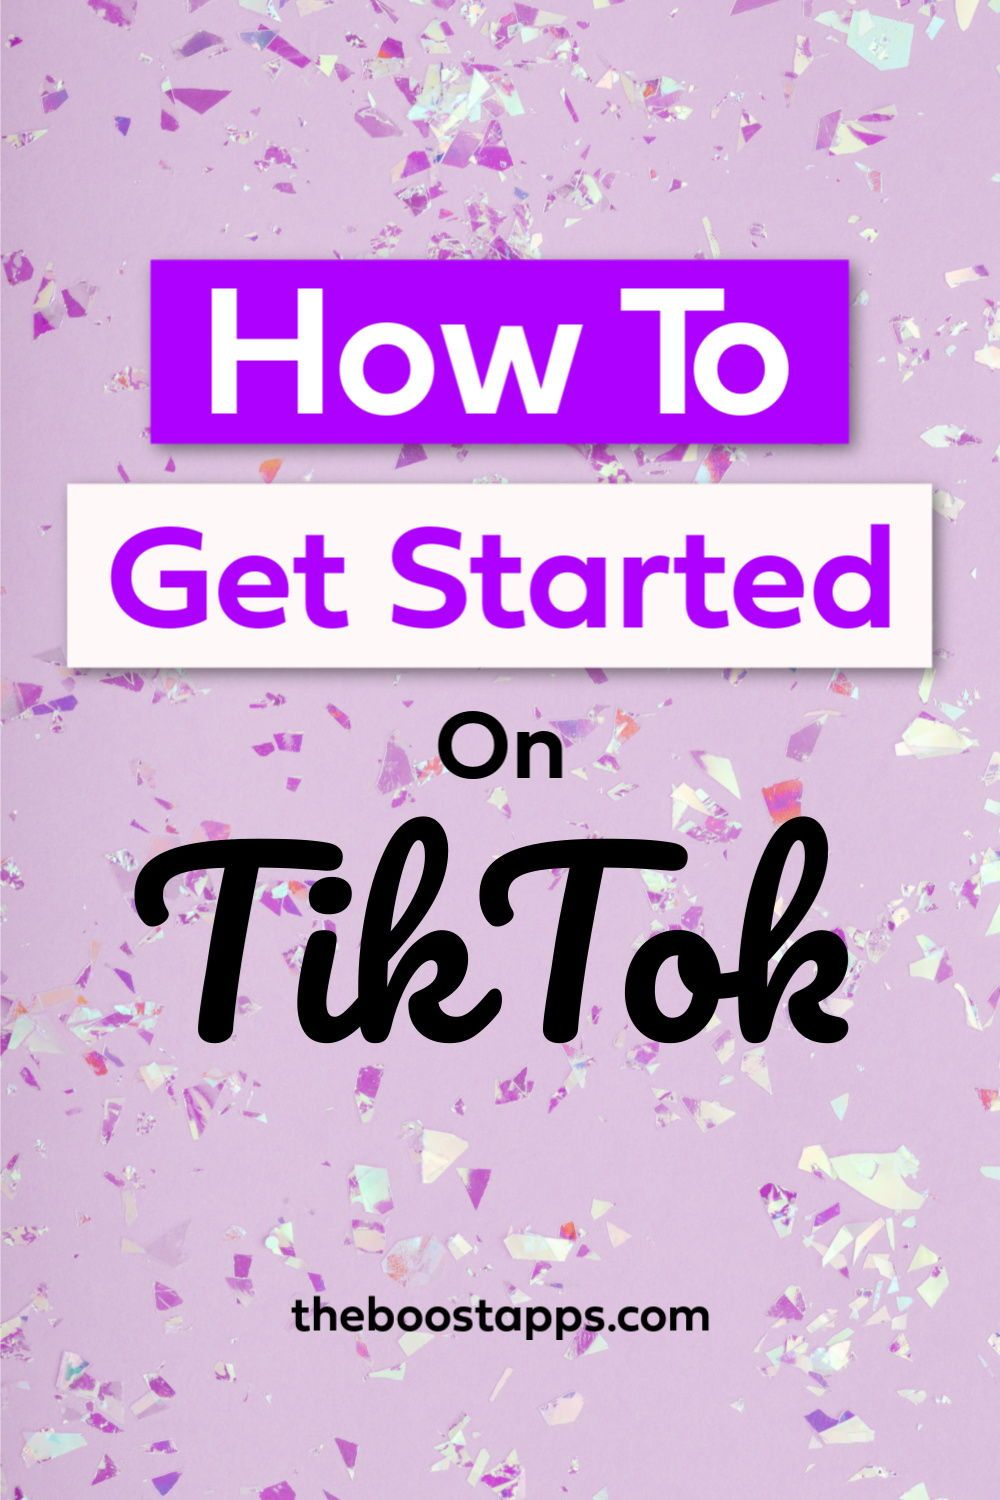 8 Hacks For Small Businesses To Get Started On Tiktok Boosted Social Media Marketing Business Blog Social Media Social Media Marketing Tools